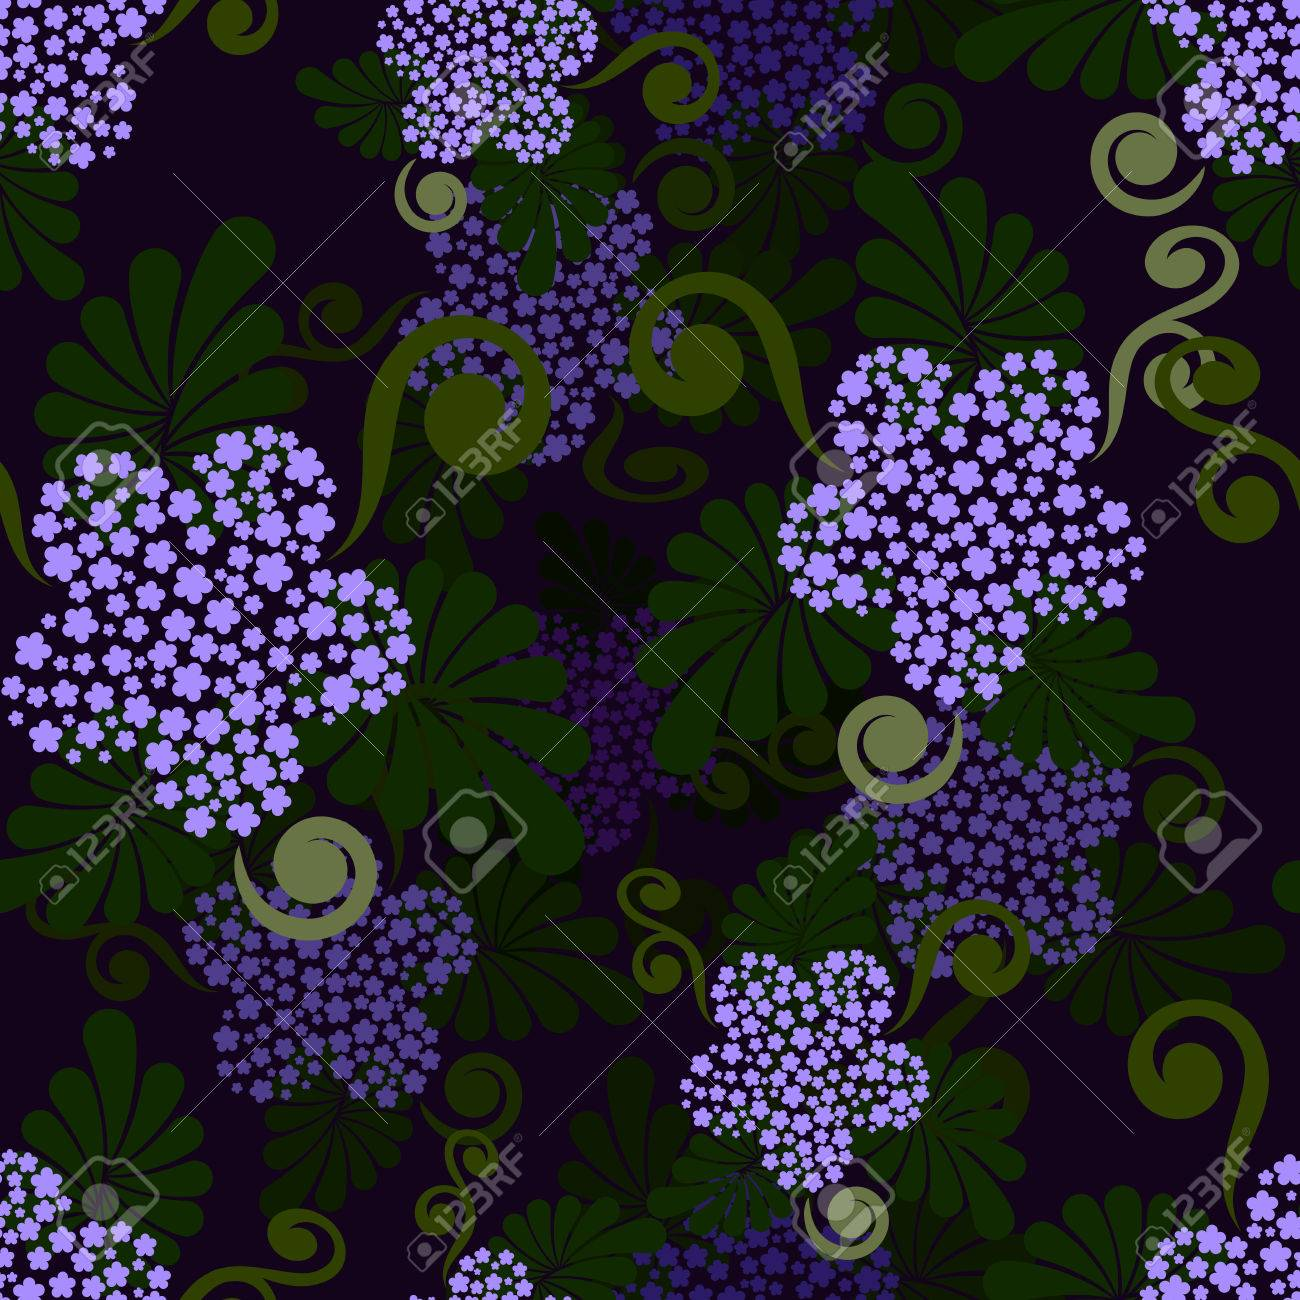 Seamless Dark Green And Purple Floral Wallpaper Pattern Royalty